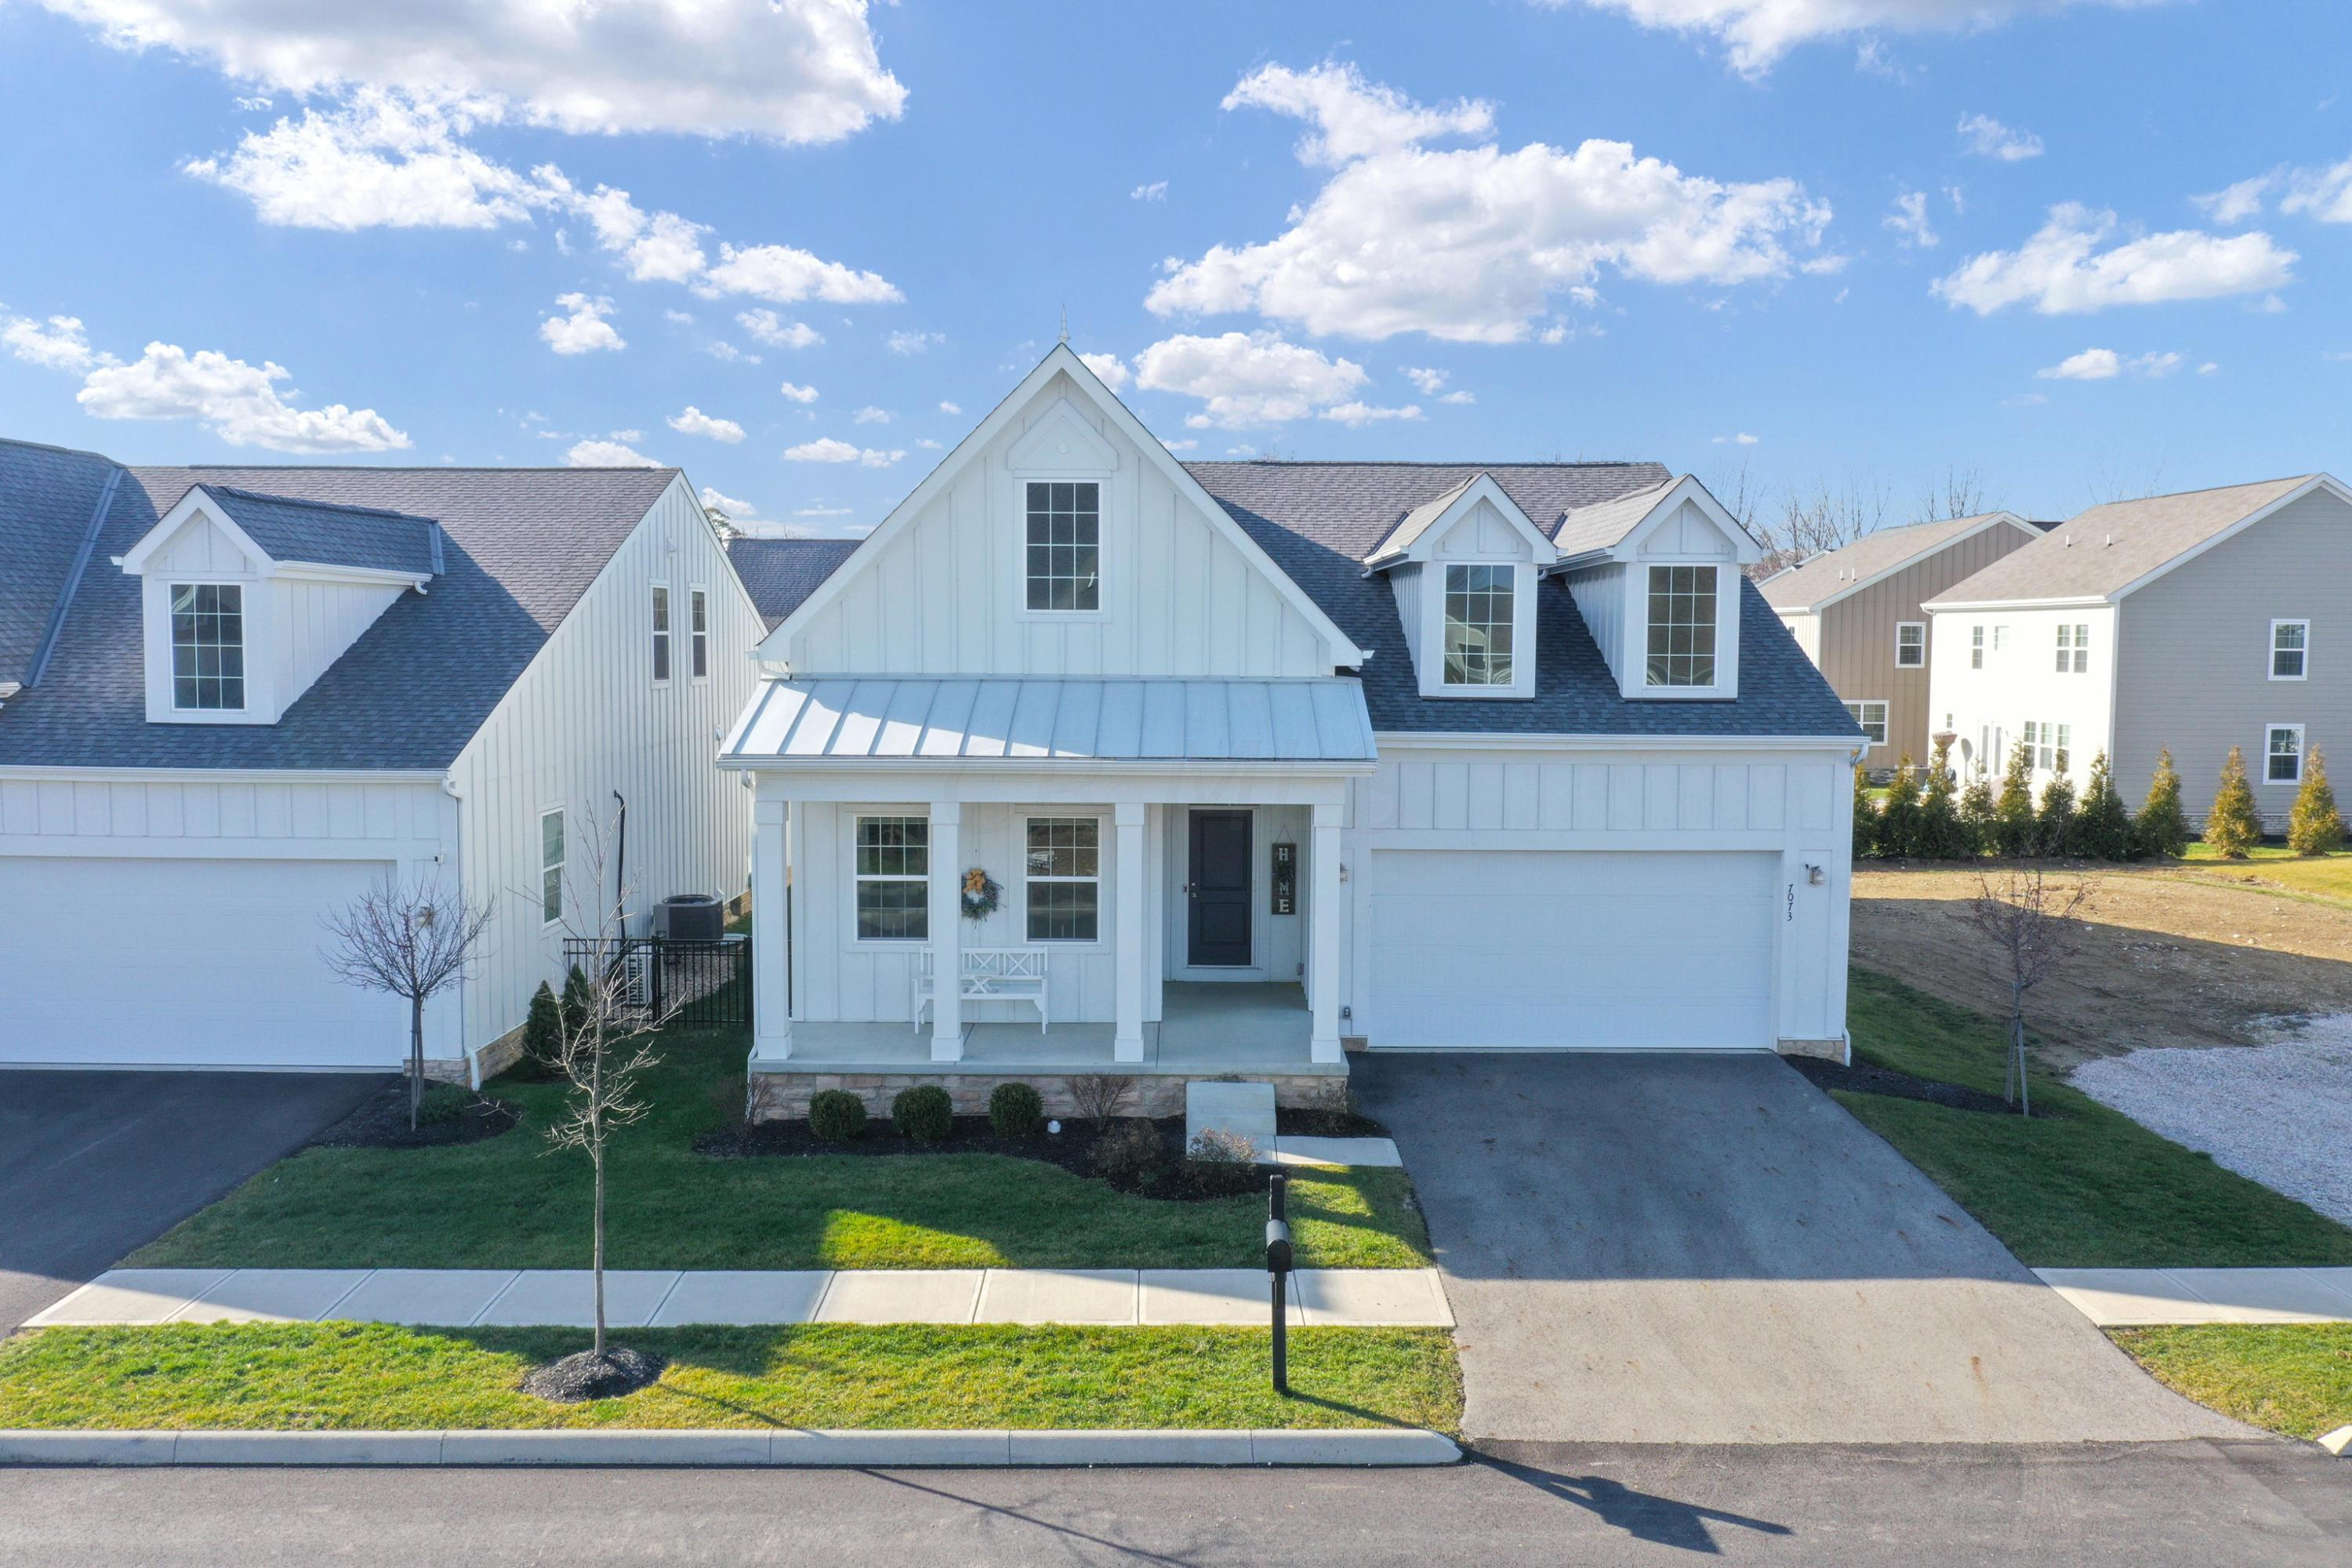 7073 Inchcape Lane, Dublin, Ohio 43016, 2 Bedrooms Bedrooms, ,2 BathroomsBathrooms,Residential,For Sale,Inchcape,221001001